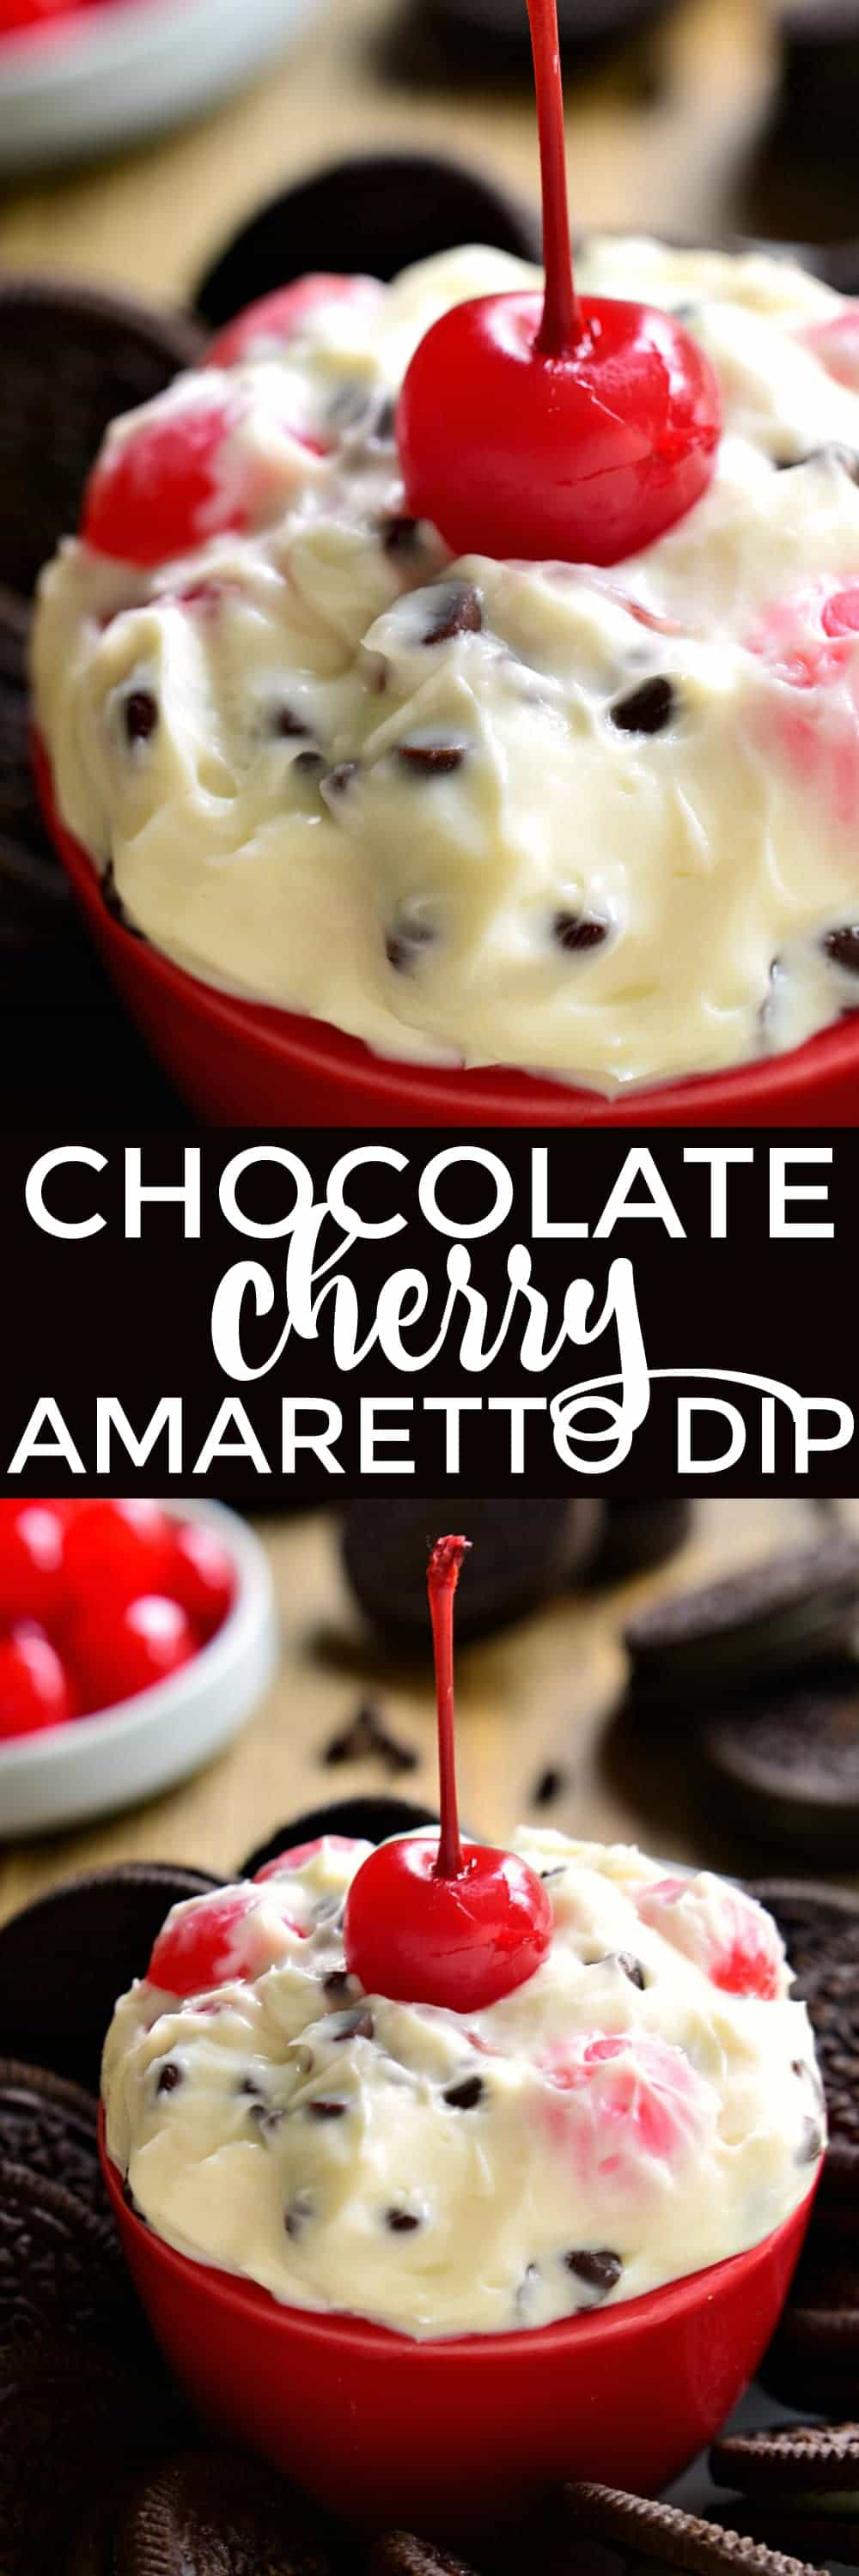 This Chocolate Cherry Amaretto Dip is sweet, creamy, and SO delicious! This 5 minute, 5 ingredient dip will disappear fast! Perfect for Valentine's Day....or just because!